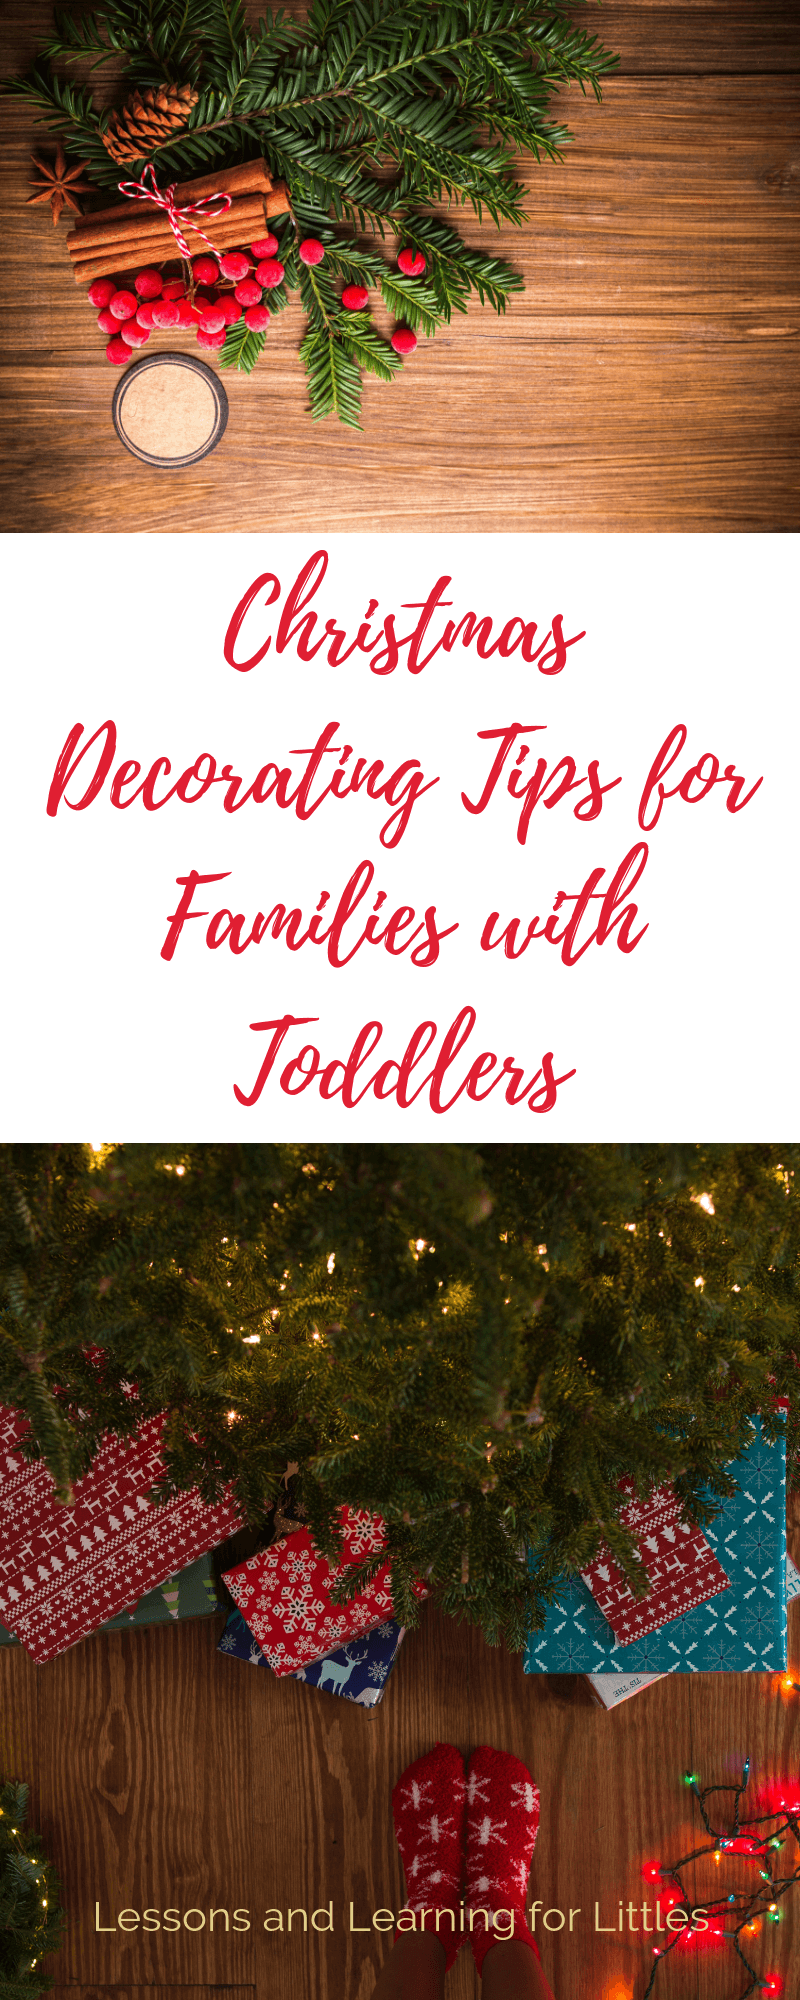 Have a picture perfect house AND toddlers! Click through to learn 4 easy ways to keep the Christmas tree safe AND how to let your #toddler or #preschooler help #decorate the house without losing your mind. #Christmas #Christmastime #Holidays #ChristmasTree